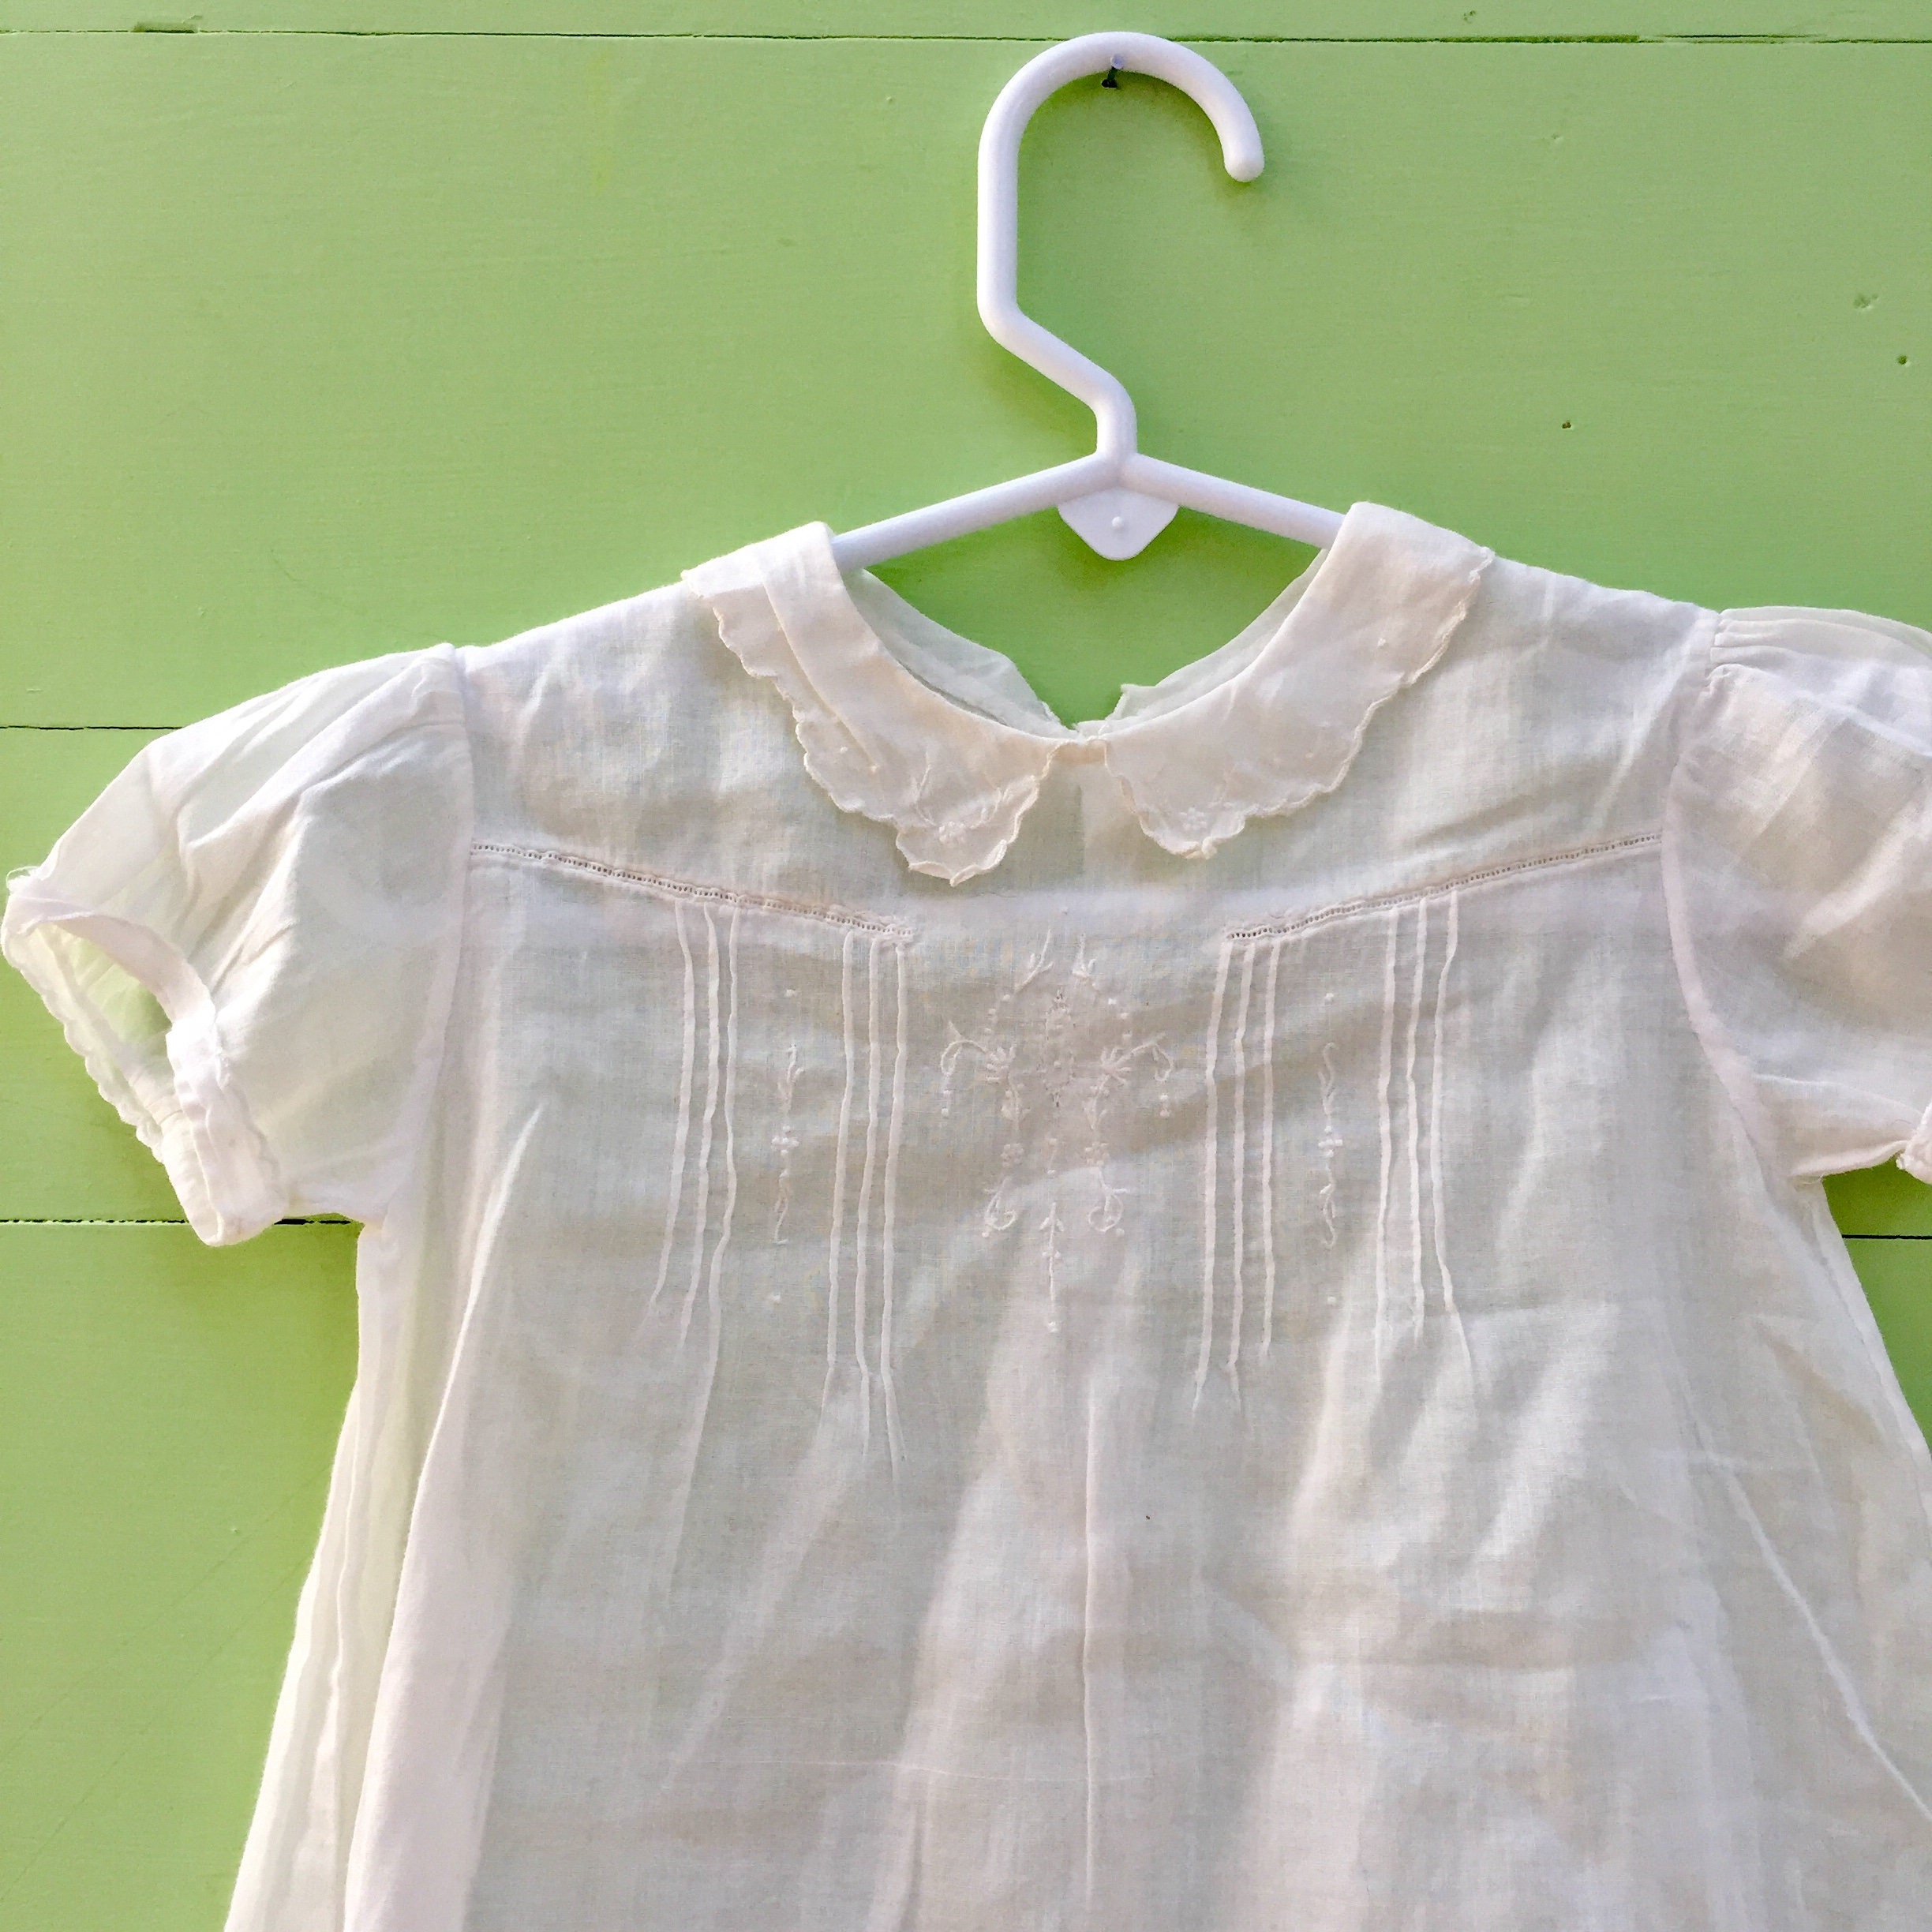 92ea4bc56 ... Vintage White Embroidered Baby Dress. gallery photo gallery photo ...